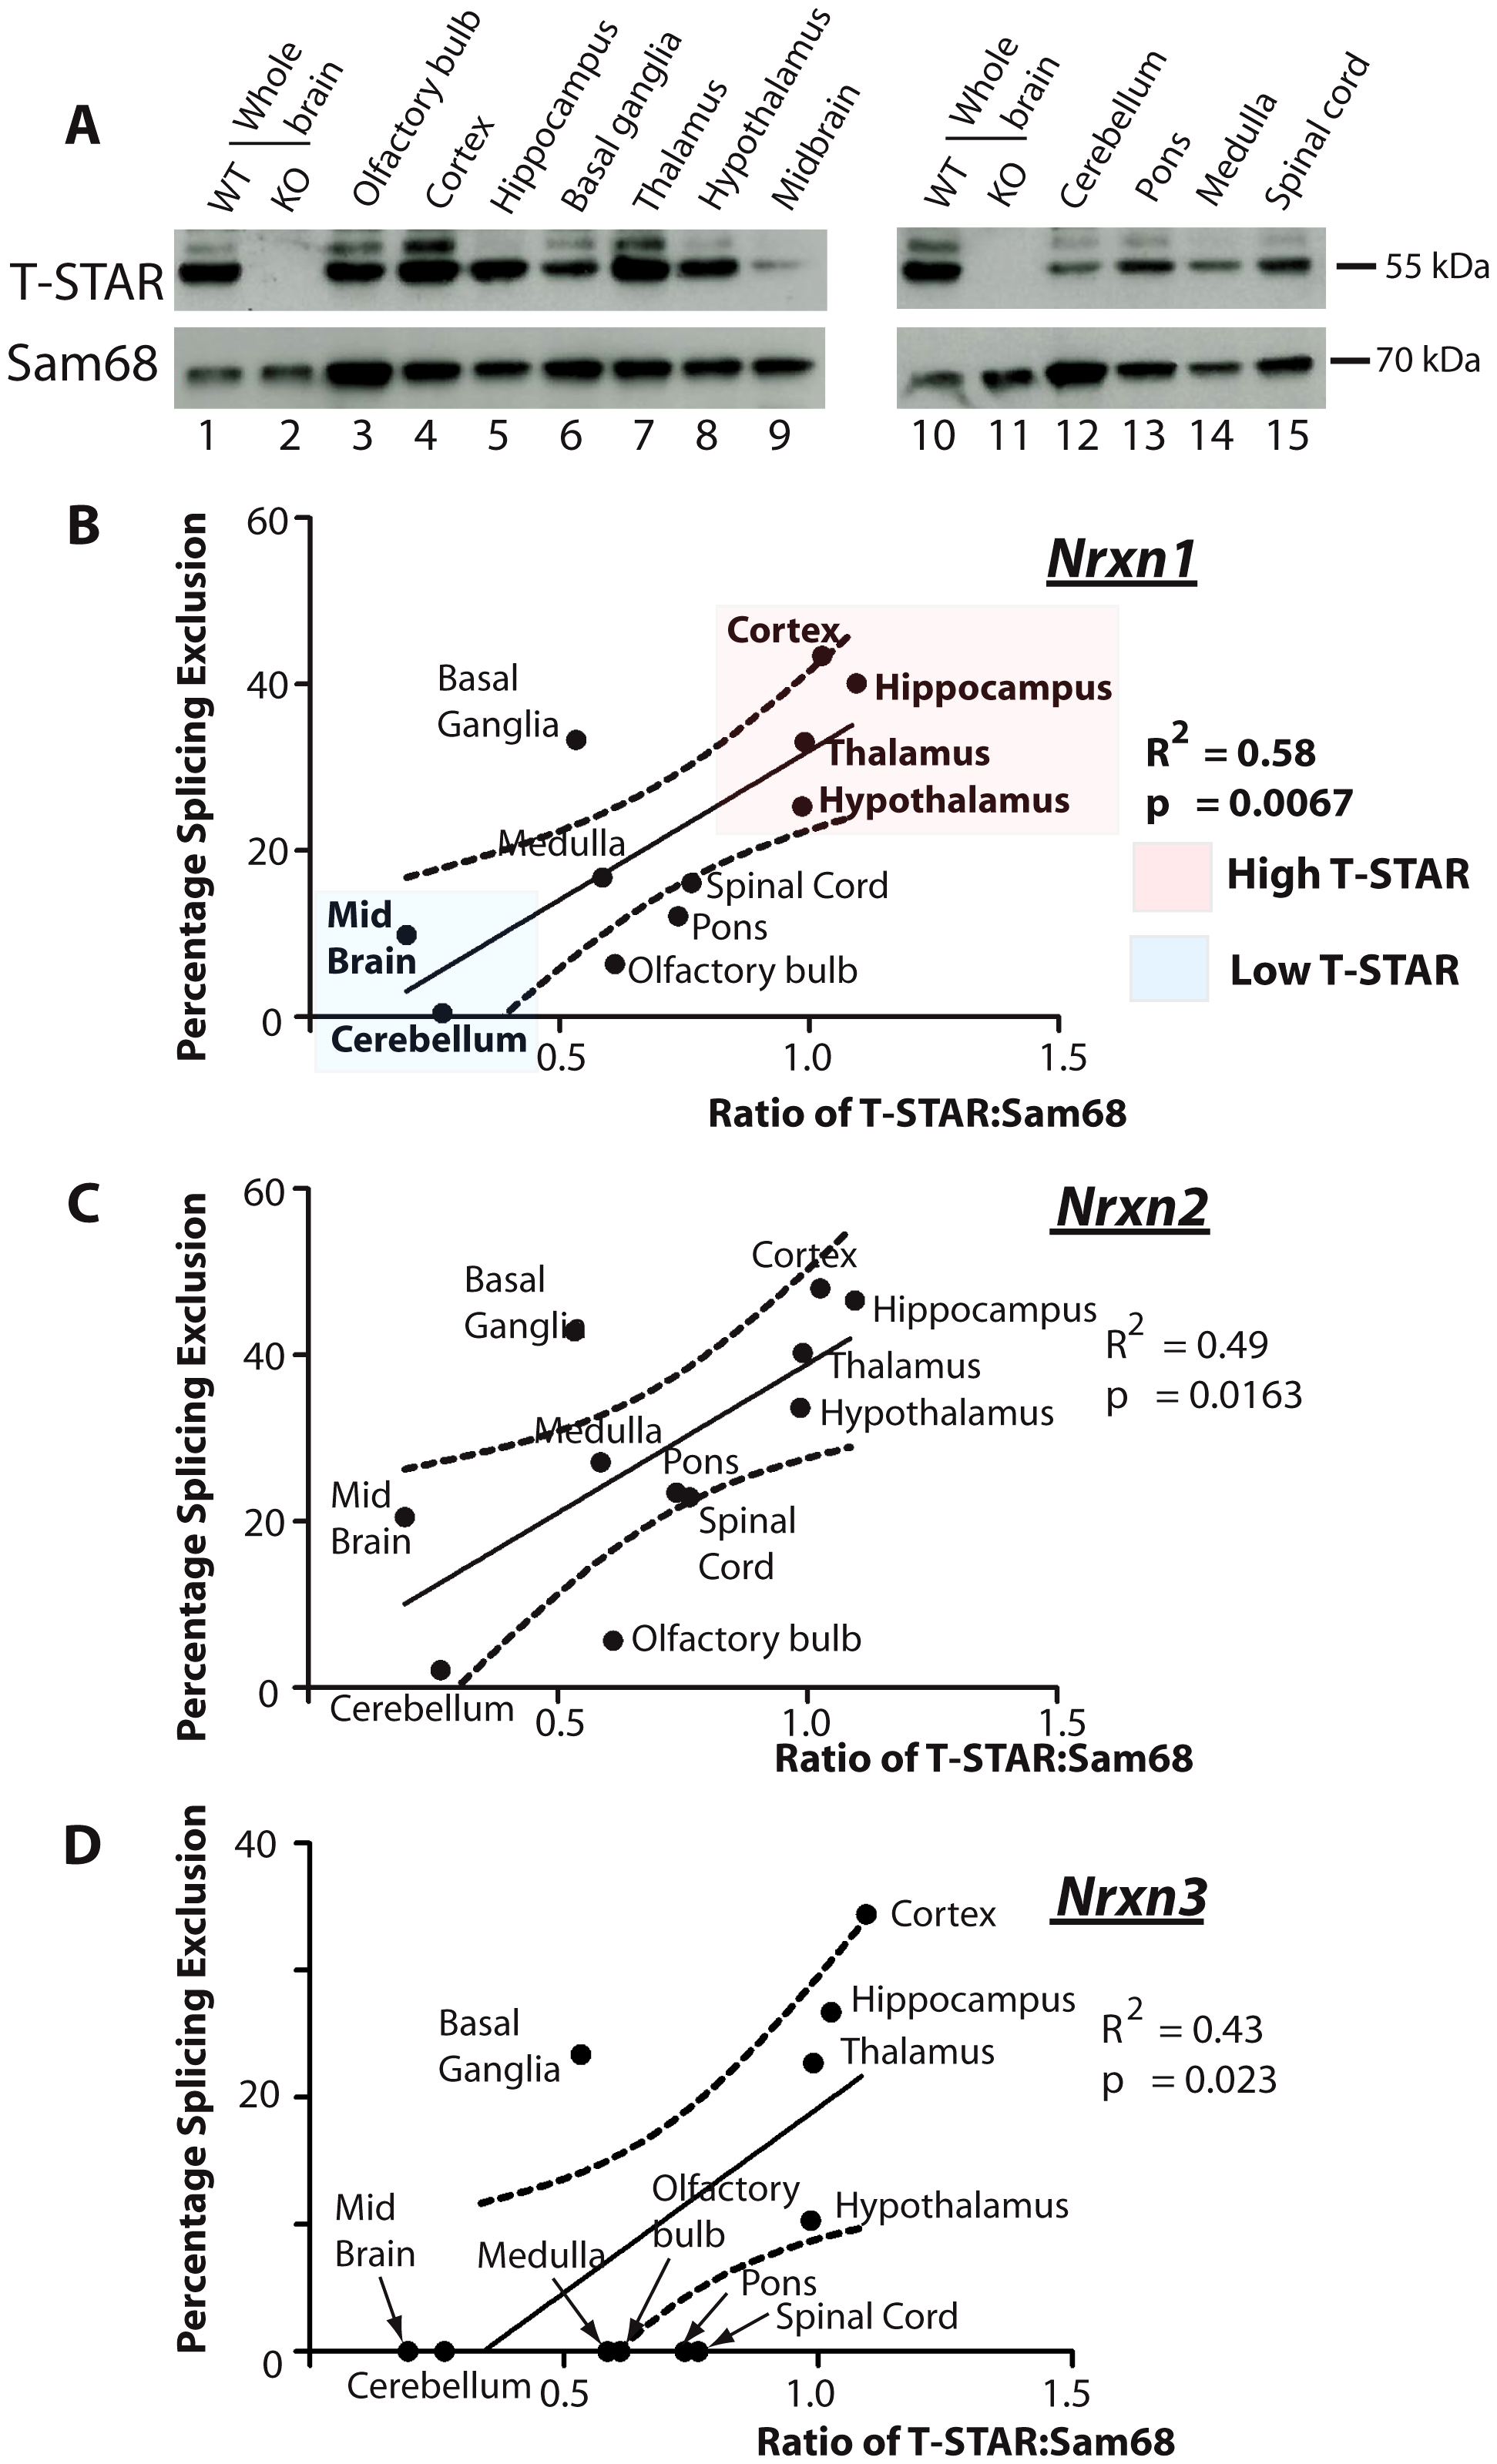 T-STAR protein concentration correlates with <i>Nrxn1-3</i> AS4 alternative splicing patterns.